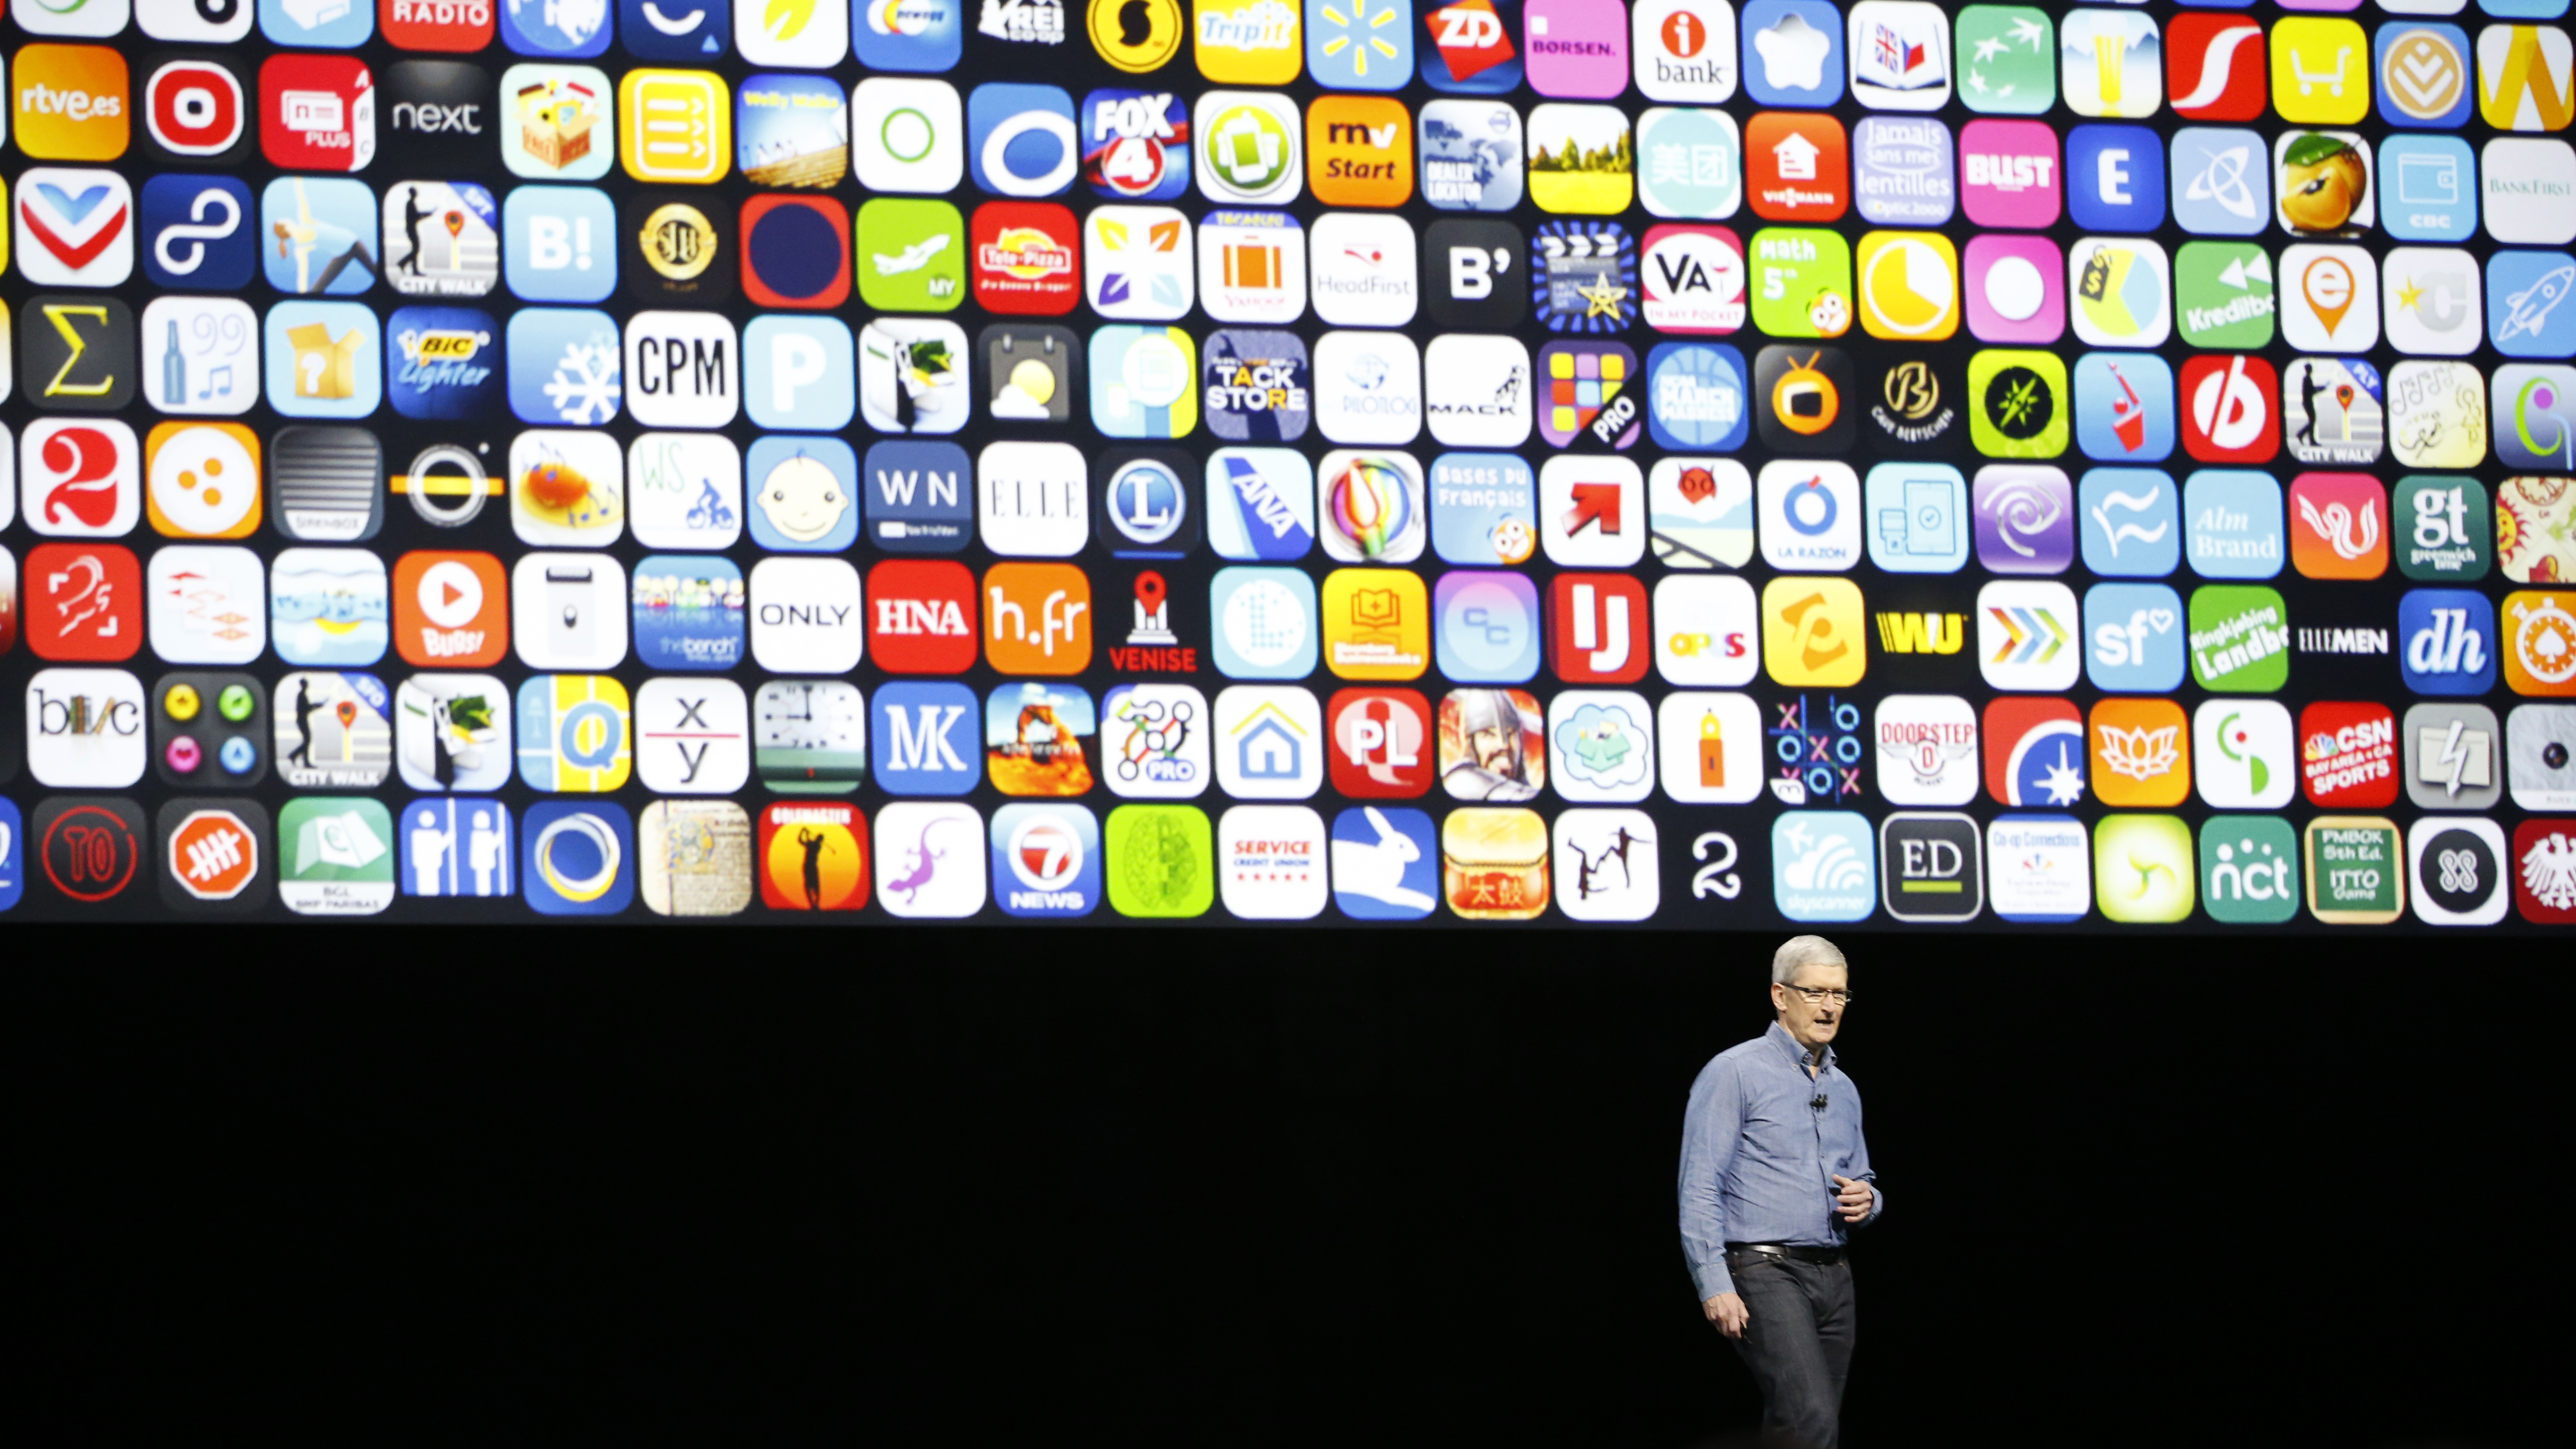 Apple CEO Tim Cook speaks about Swift Playgrounds young developers app at the Apple Worldwide Developers Conference in the Bill Graham Civic Auditorium, San Francisco, Monday, June 13, 2016. (AP Photo/Tony Avelar)